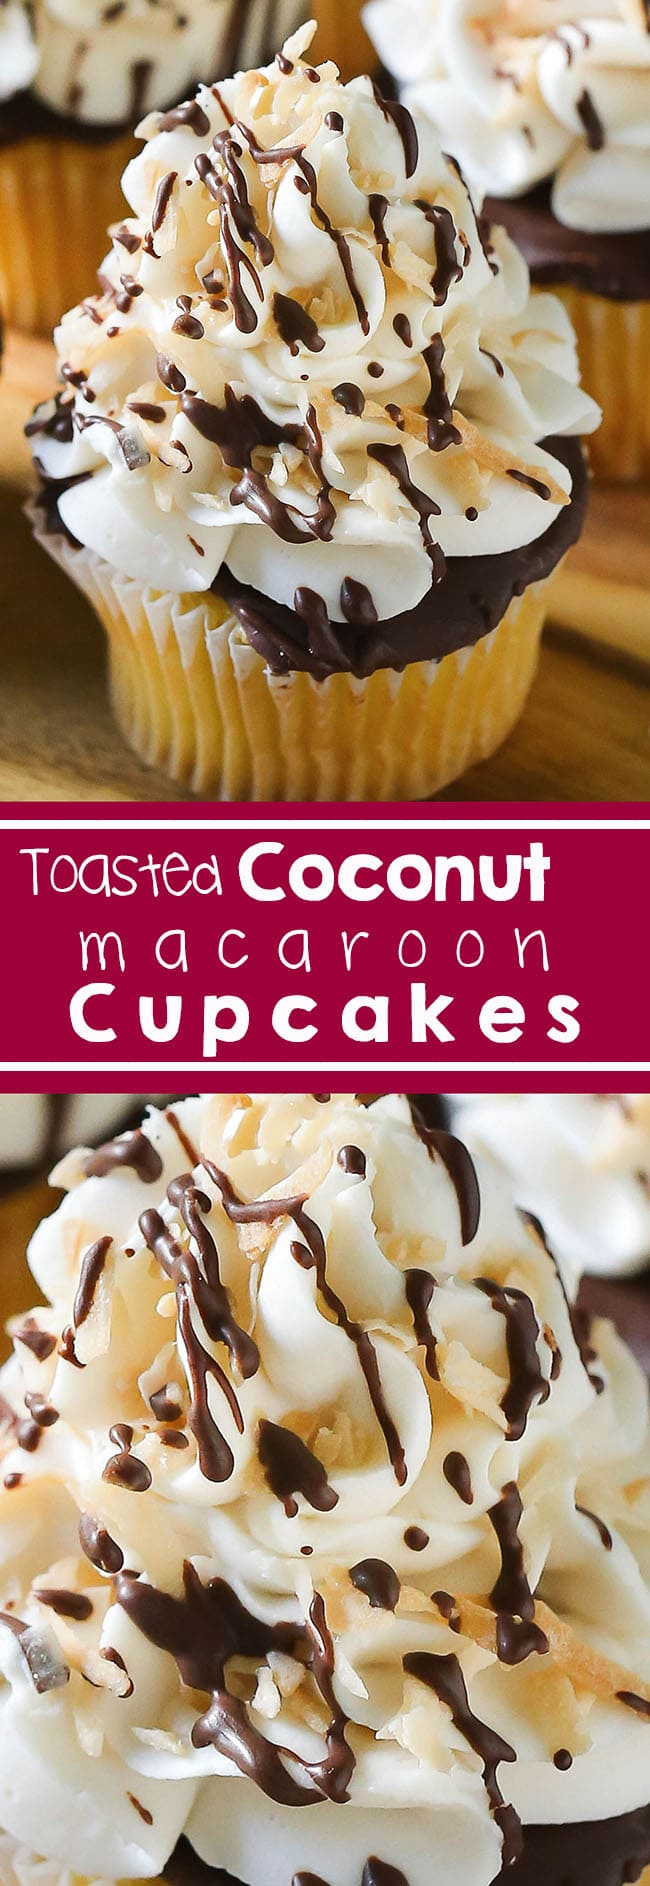 Coconut Macaroon Cupcakes